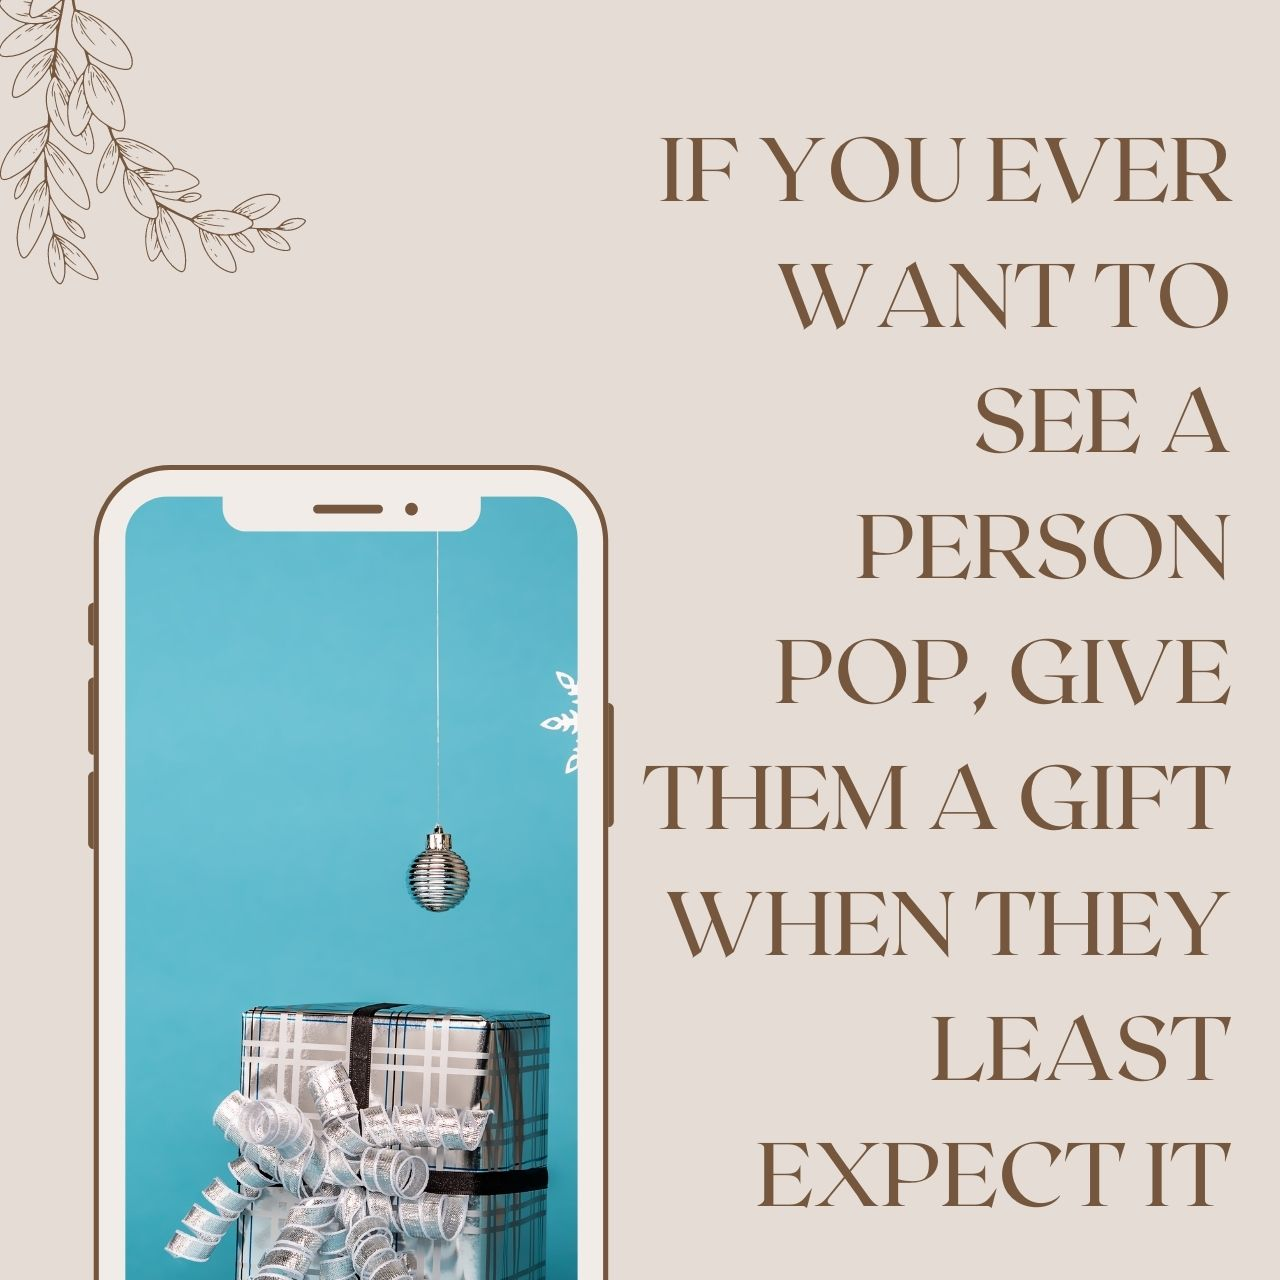 If you ever want to see a person pop, give them a gift when they least expect it